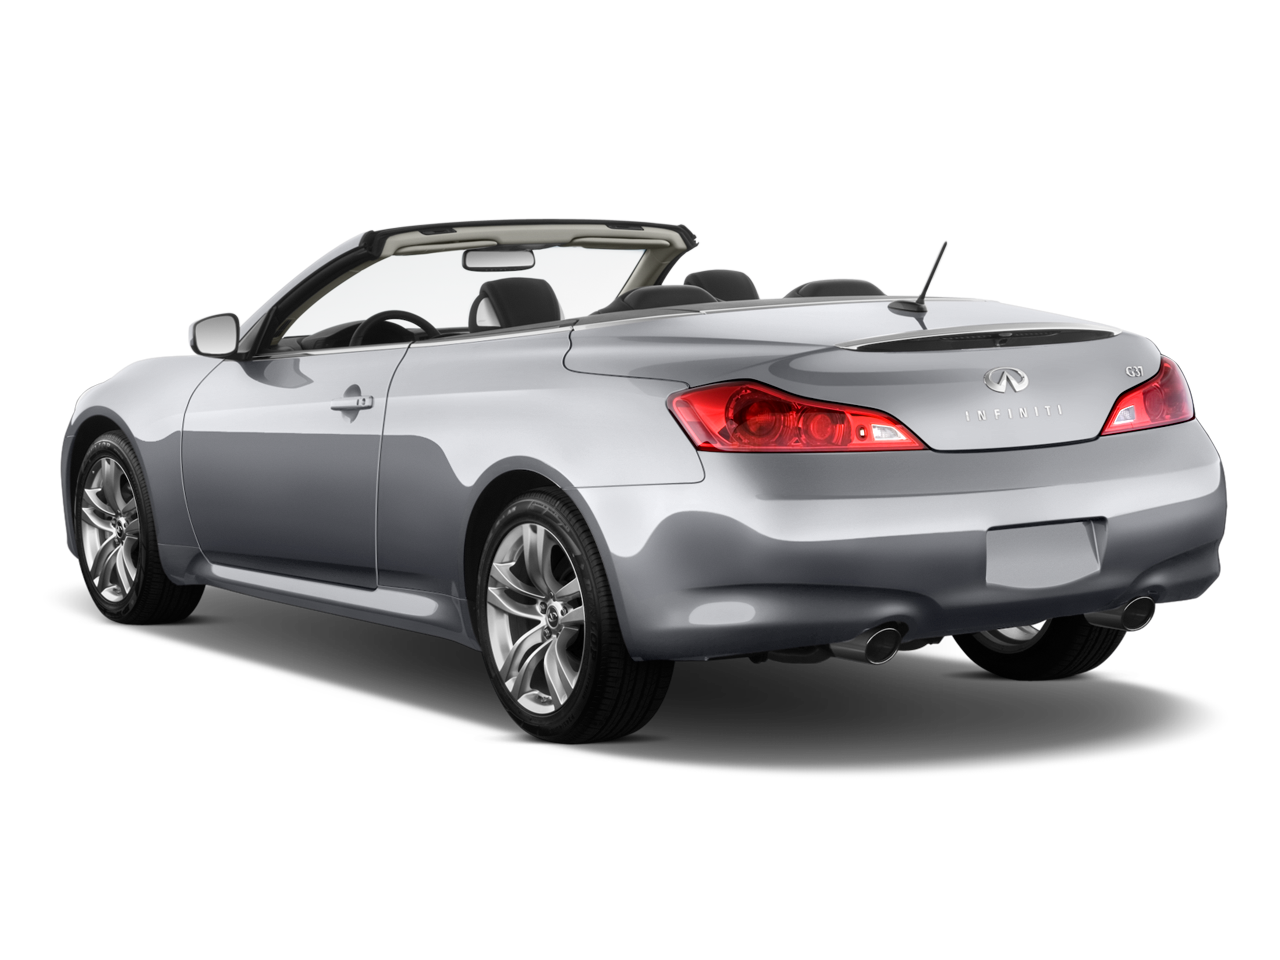 2009 infiniti g37 convertible infiniti luxury convertible review automobile magazine. Black Bedroom Furniture Sets. Home Design Ideas